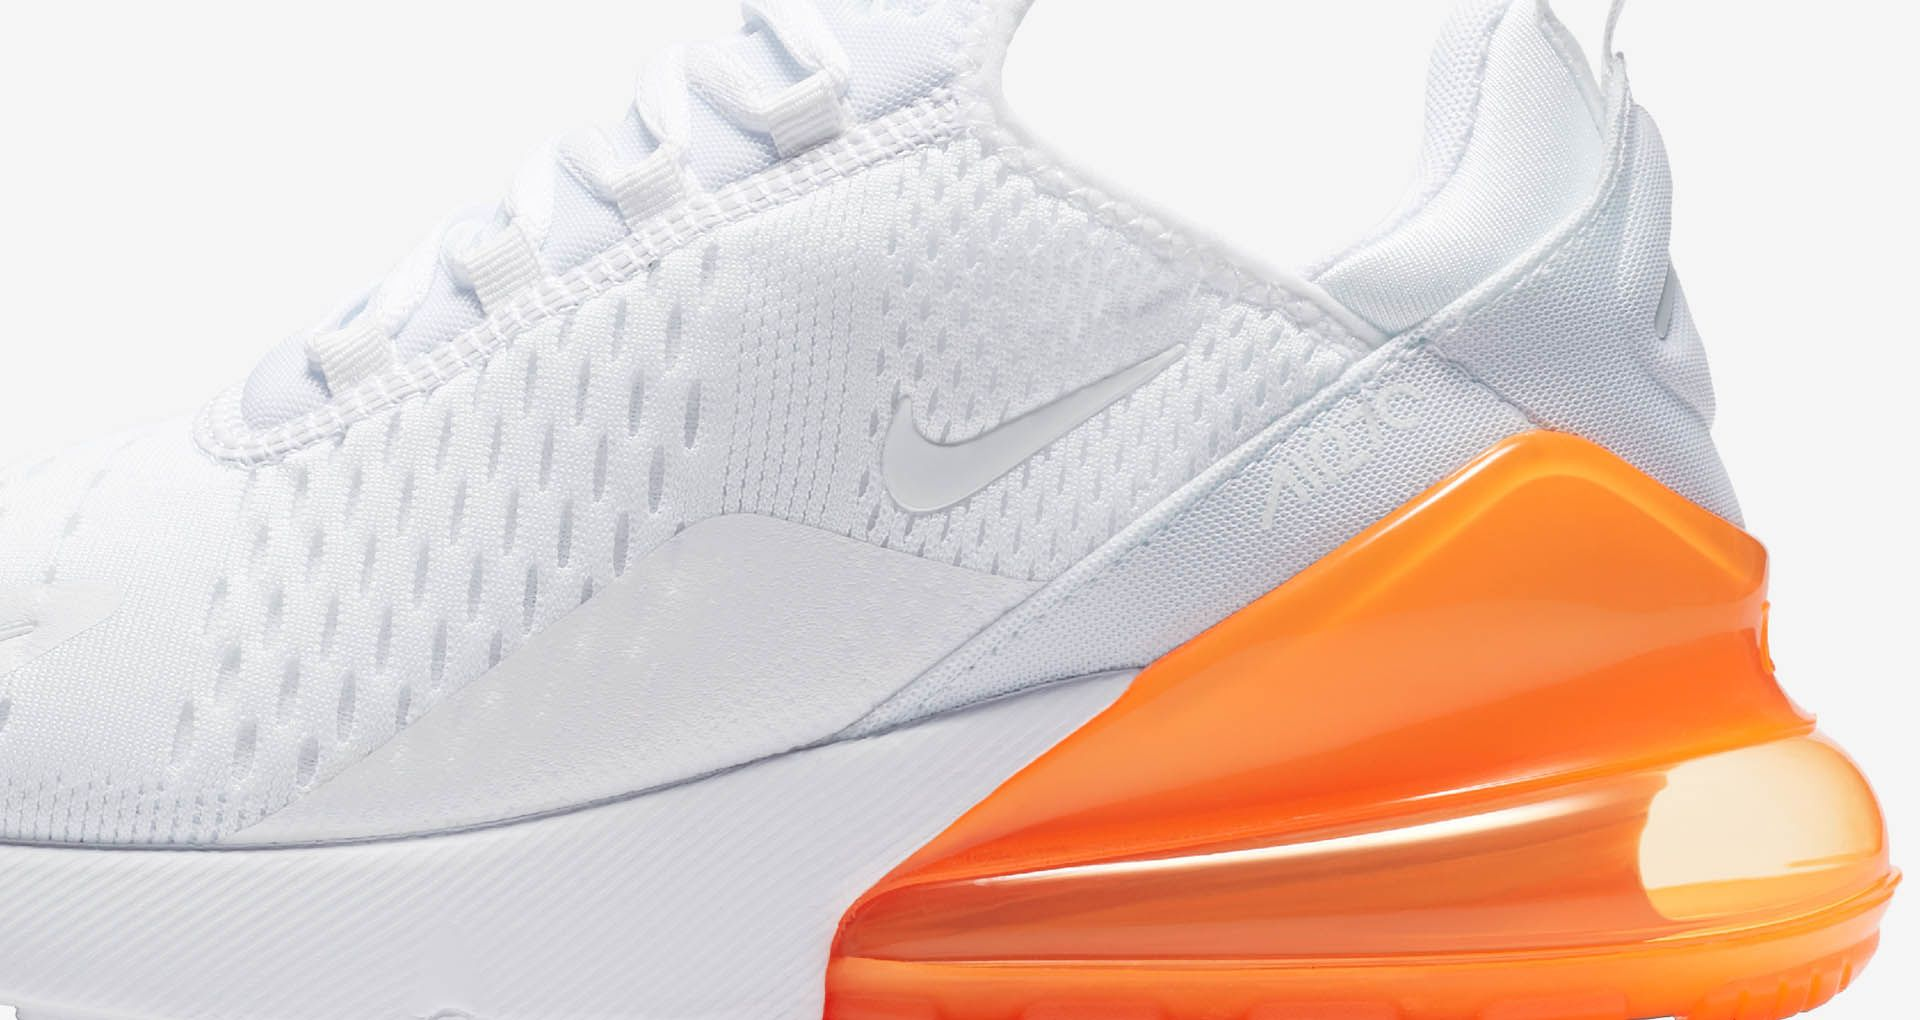 outlet store a4f9e 9cf0f Nike Air Max 270 White Pack 'Total Orange' Release Date. Nike⁠+ ...